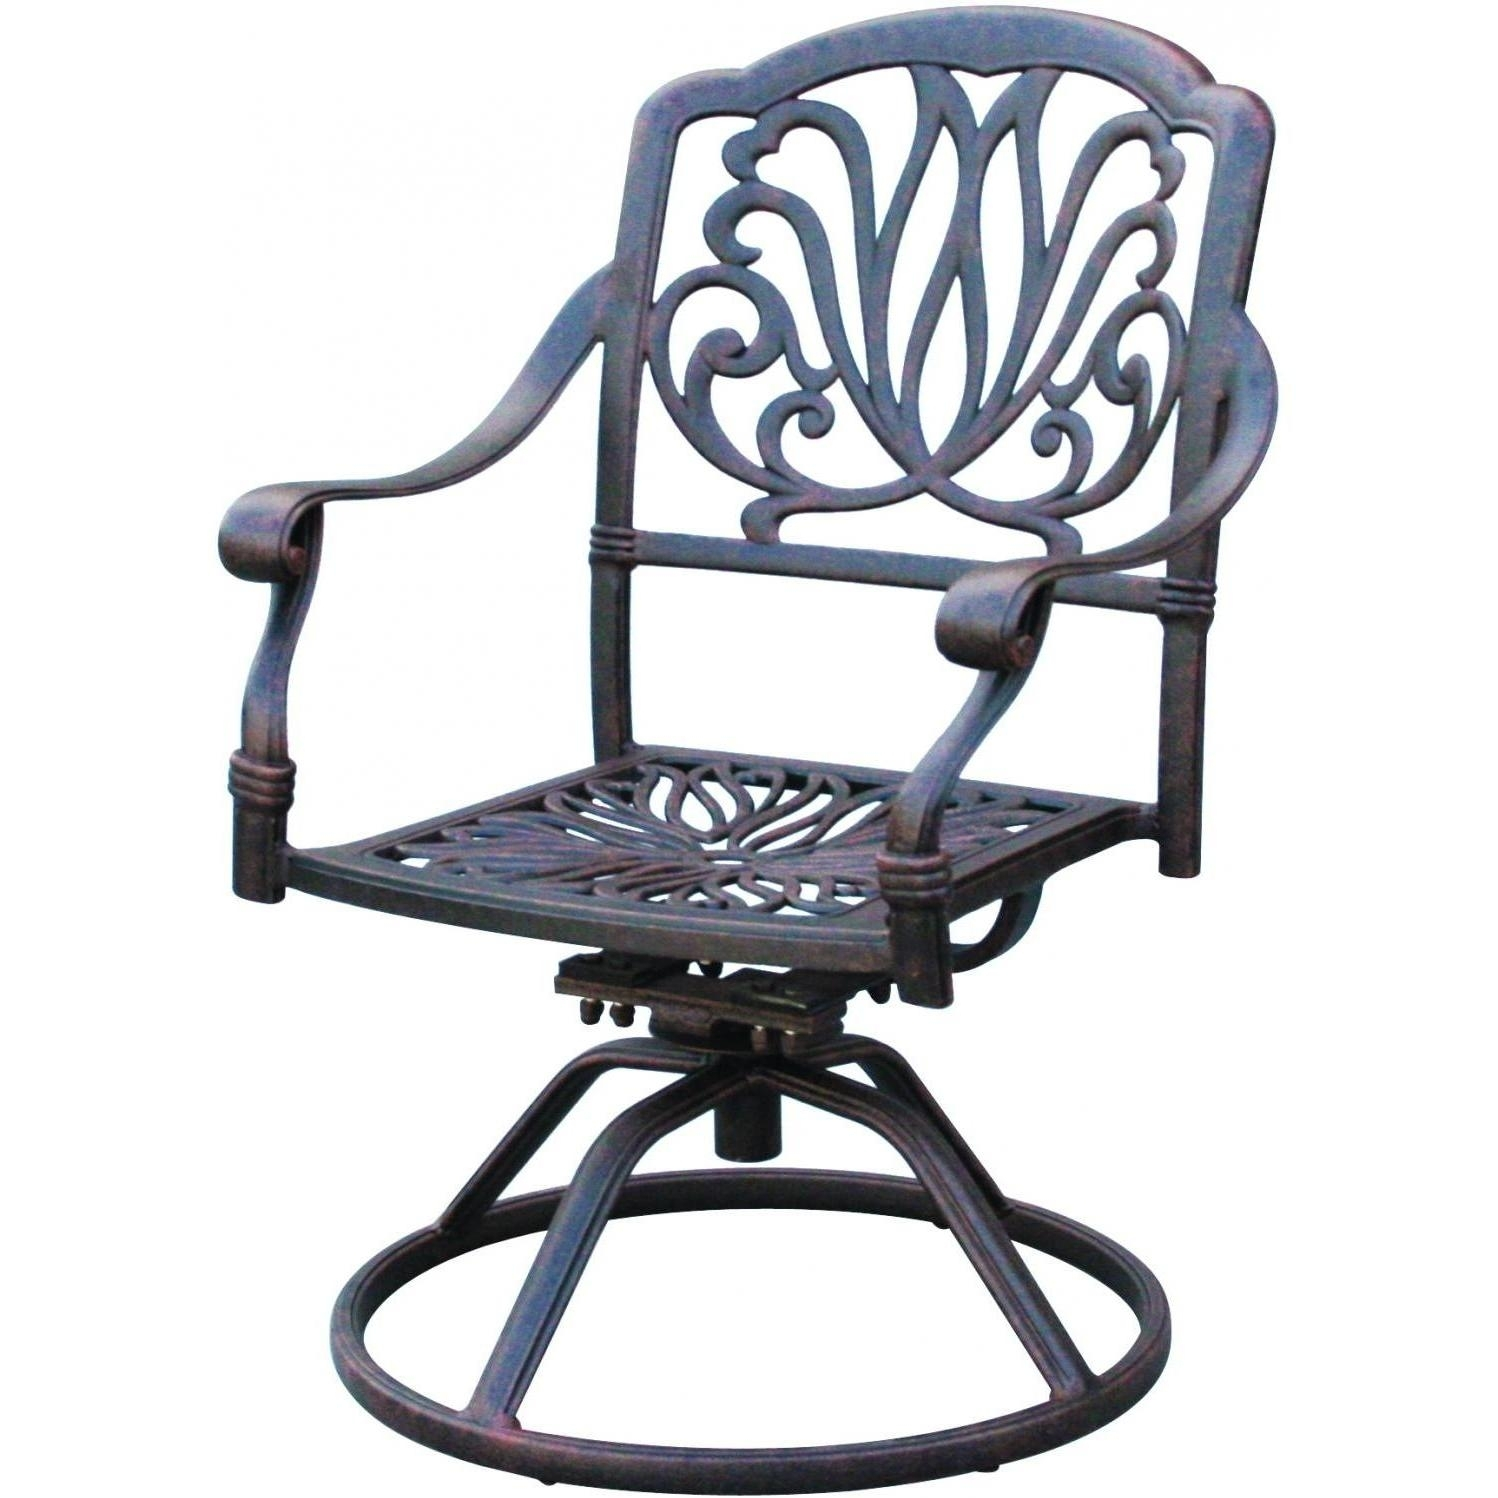 Black Wrought Iron Swivel Rocker Patio Chairs Using Black Wooden Within Iron Rocking Patio Chairs (View 13 of 15)